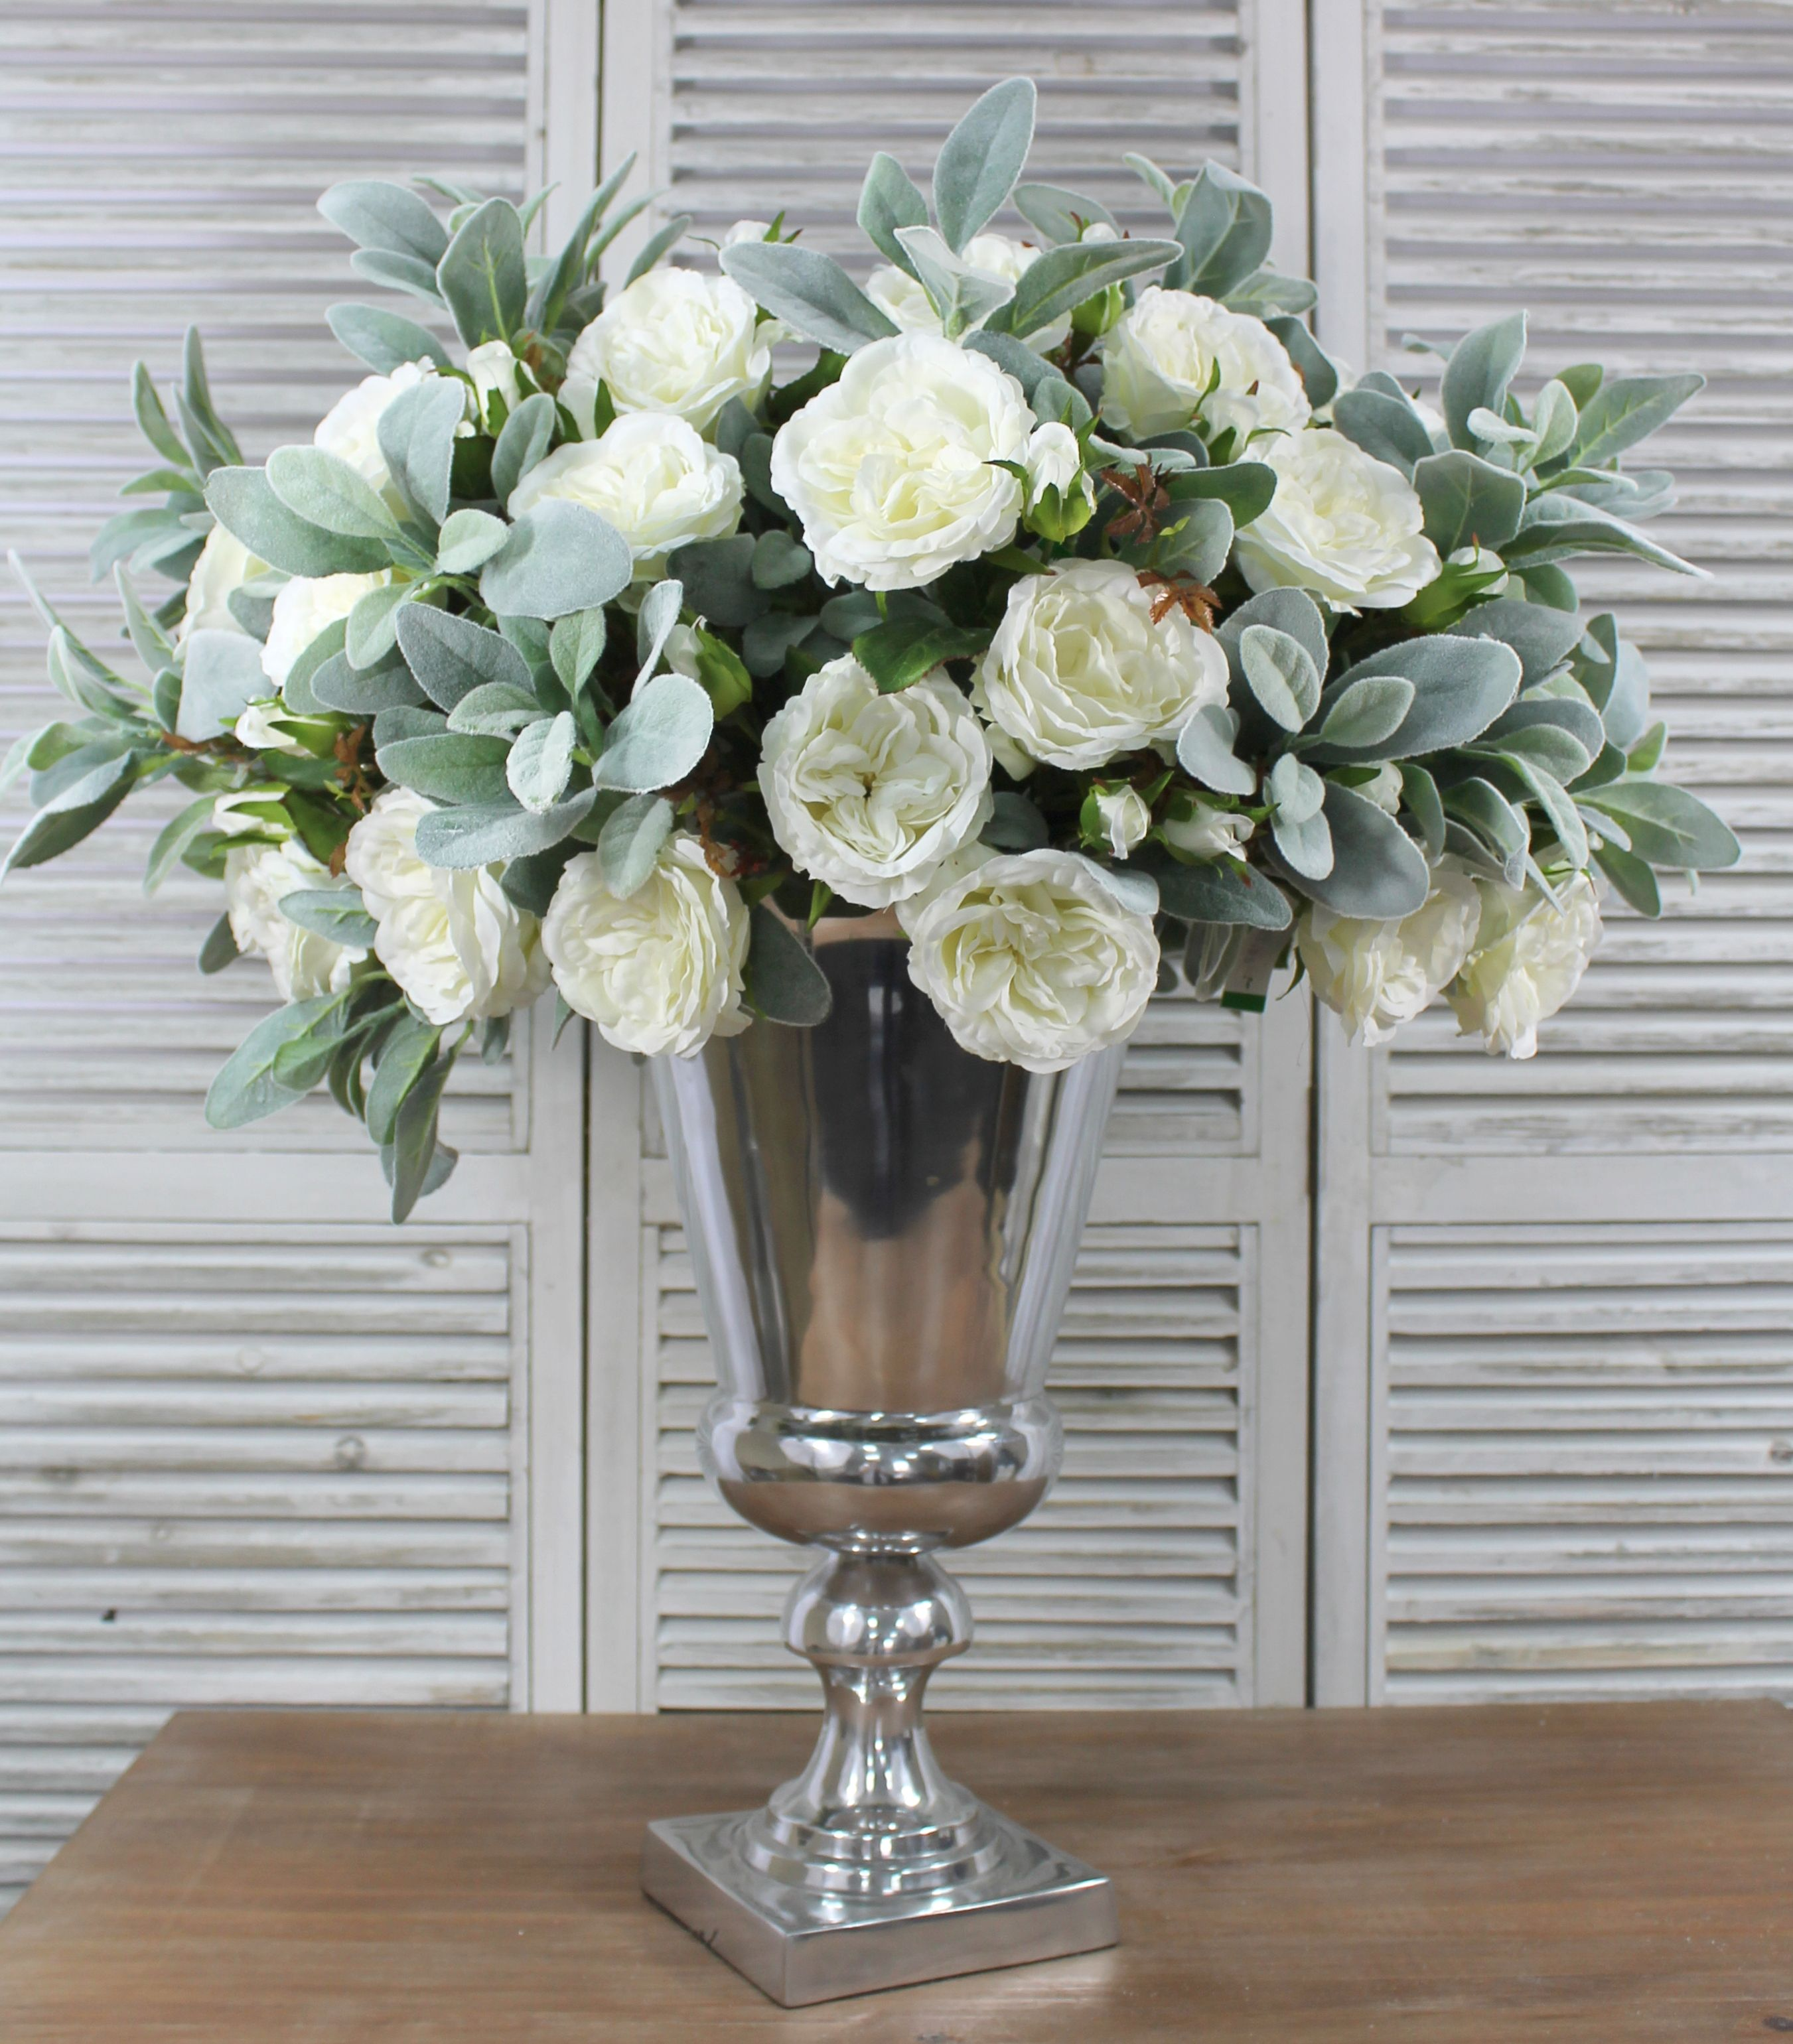 White Green Floral Display In Silver Urn Artificial Flowers Artificial Flowers Decor Artificial Flower Arrangements White Flower Arrangements